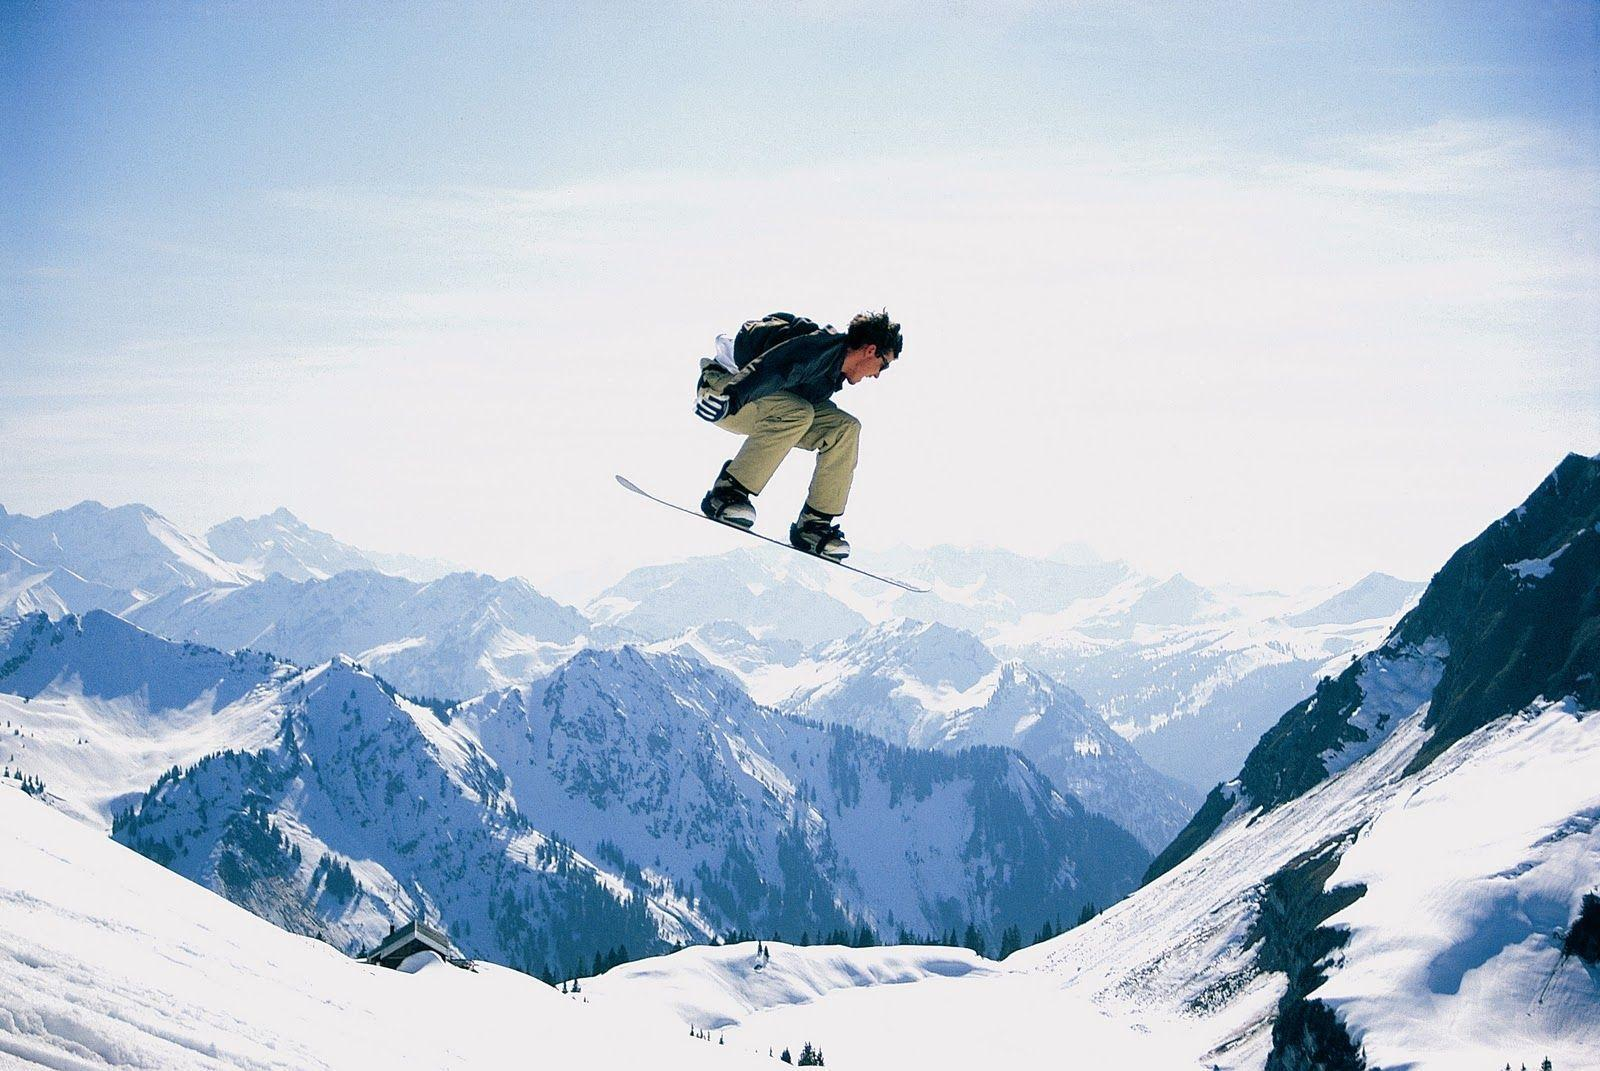 Wallpapers For > Hd Burton Snowboarding Wallpapers